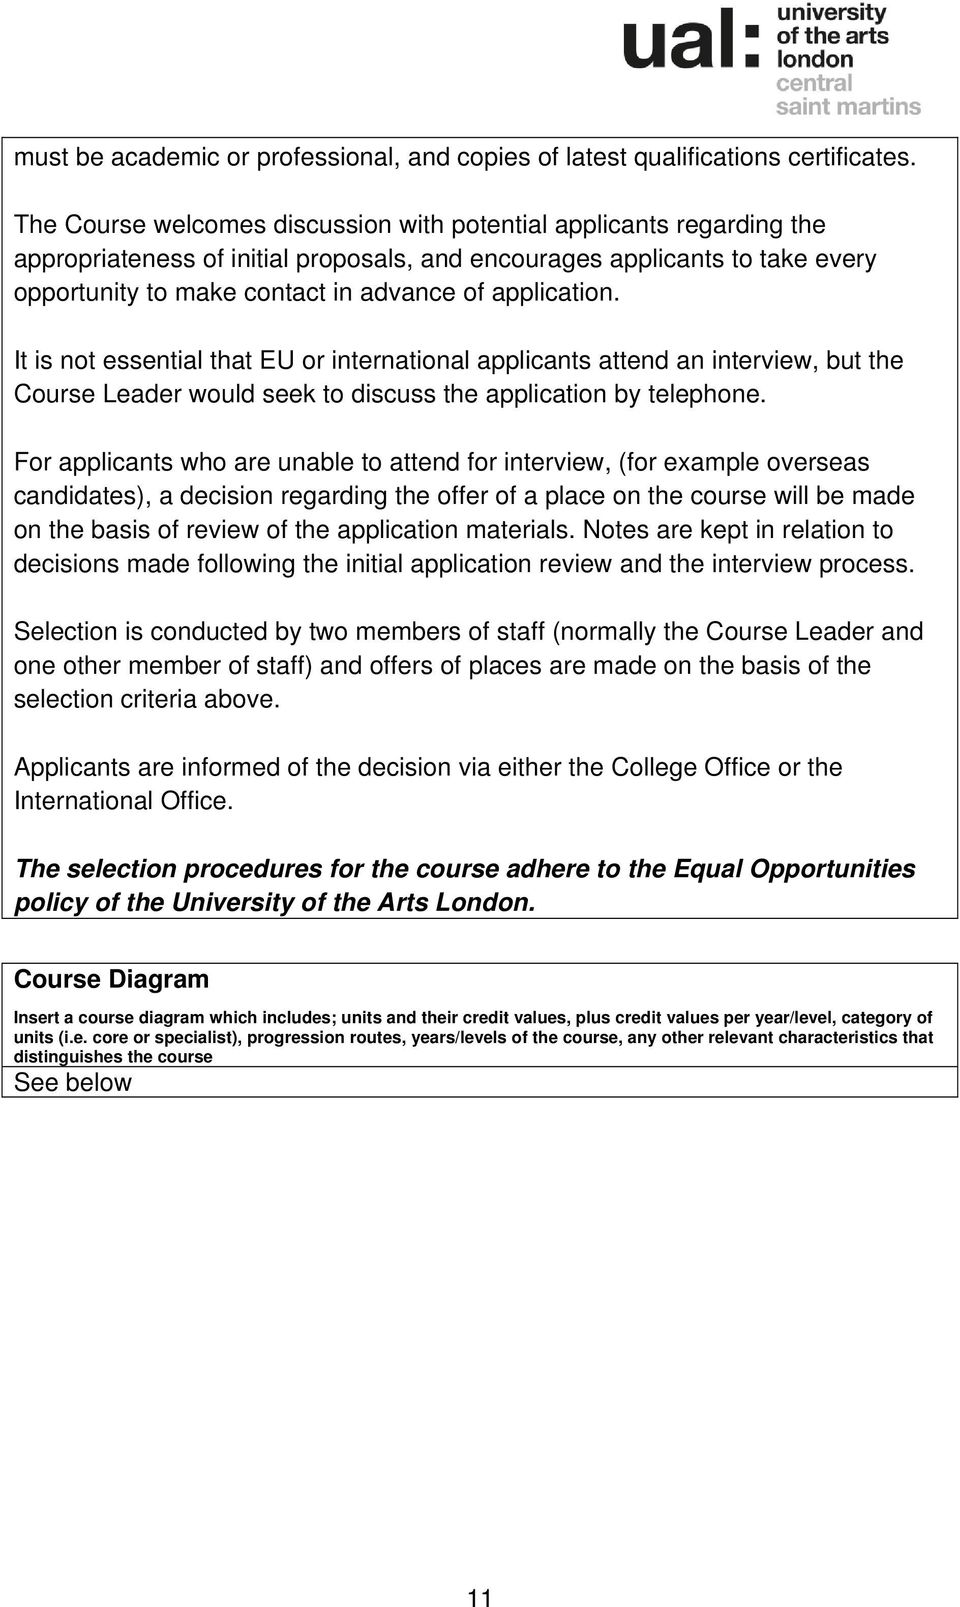 application. It is not essential that EU or international applicants attend an interview, but the Course Leader would seek to discuss the application by telephone.